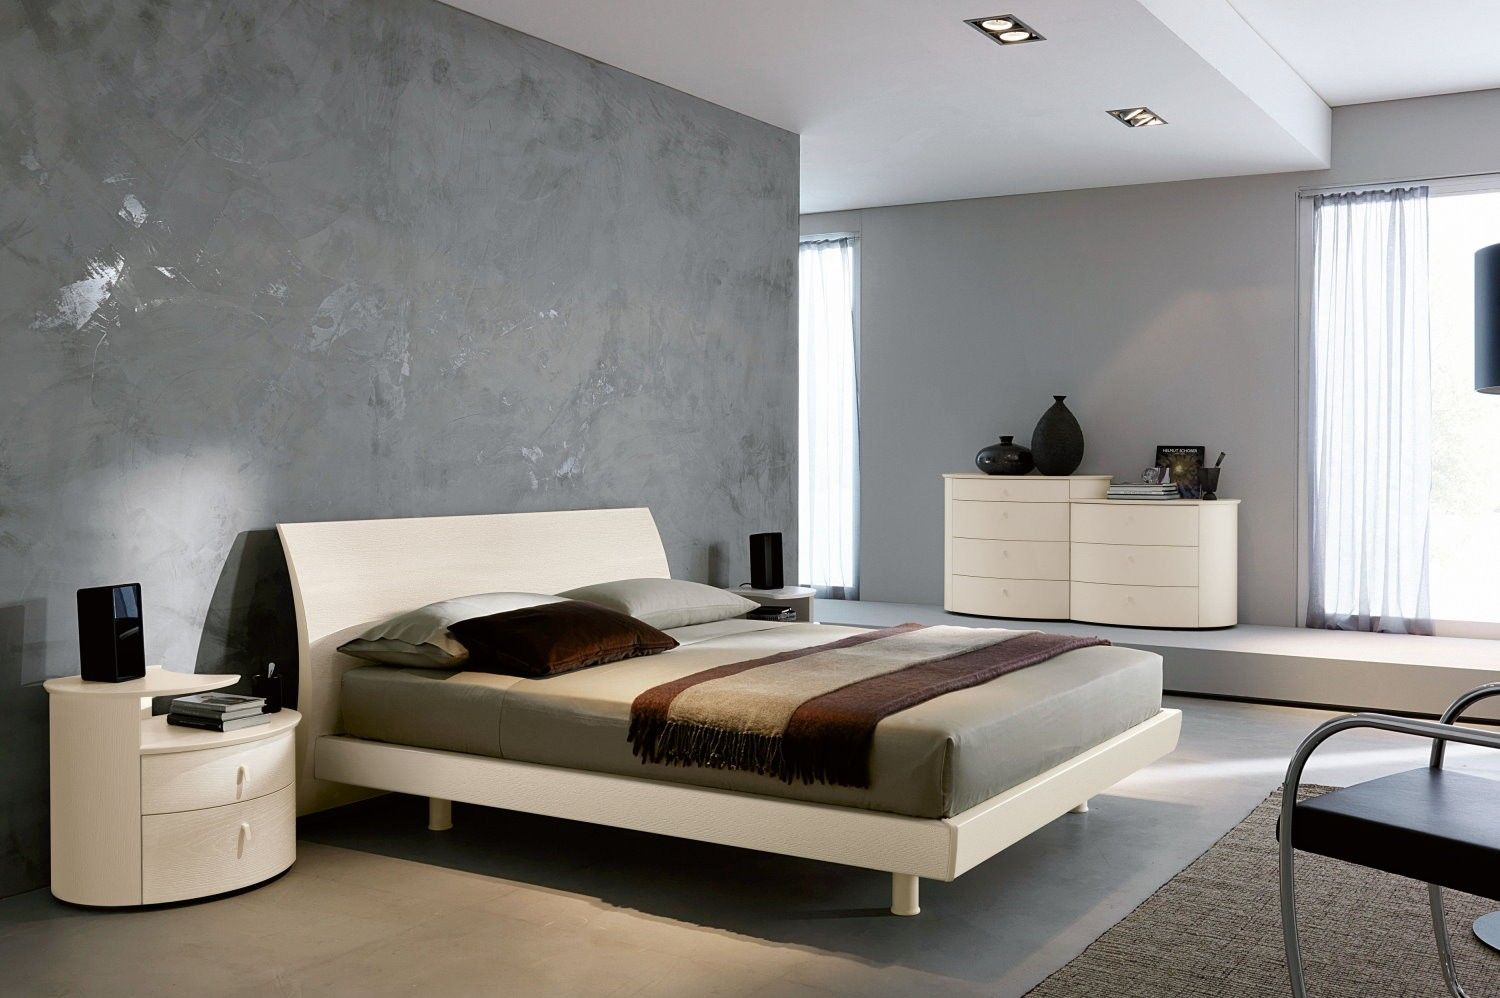 Arredamento Camera da Letto 24  NAPOLIT  Zona Notte Napol  Pinterest  Bedrooms and Walls